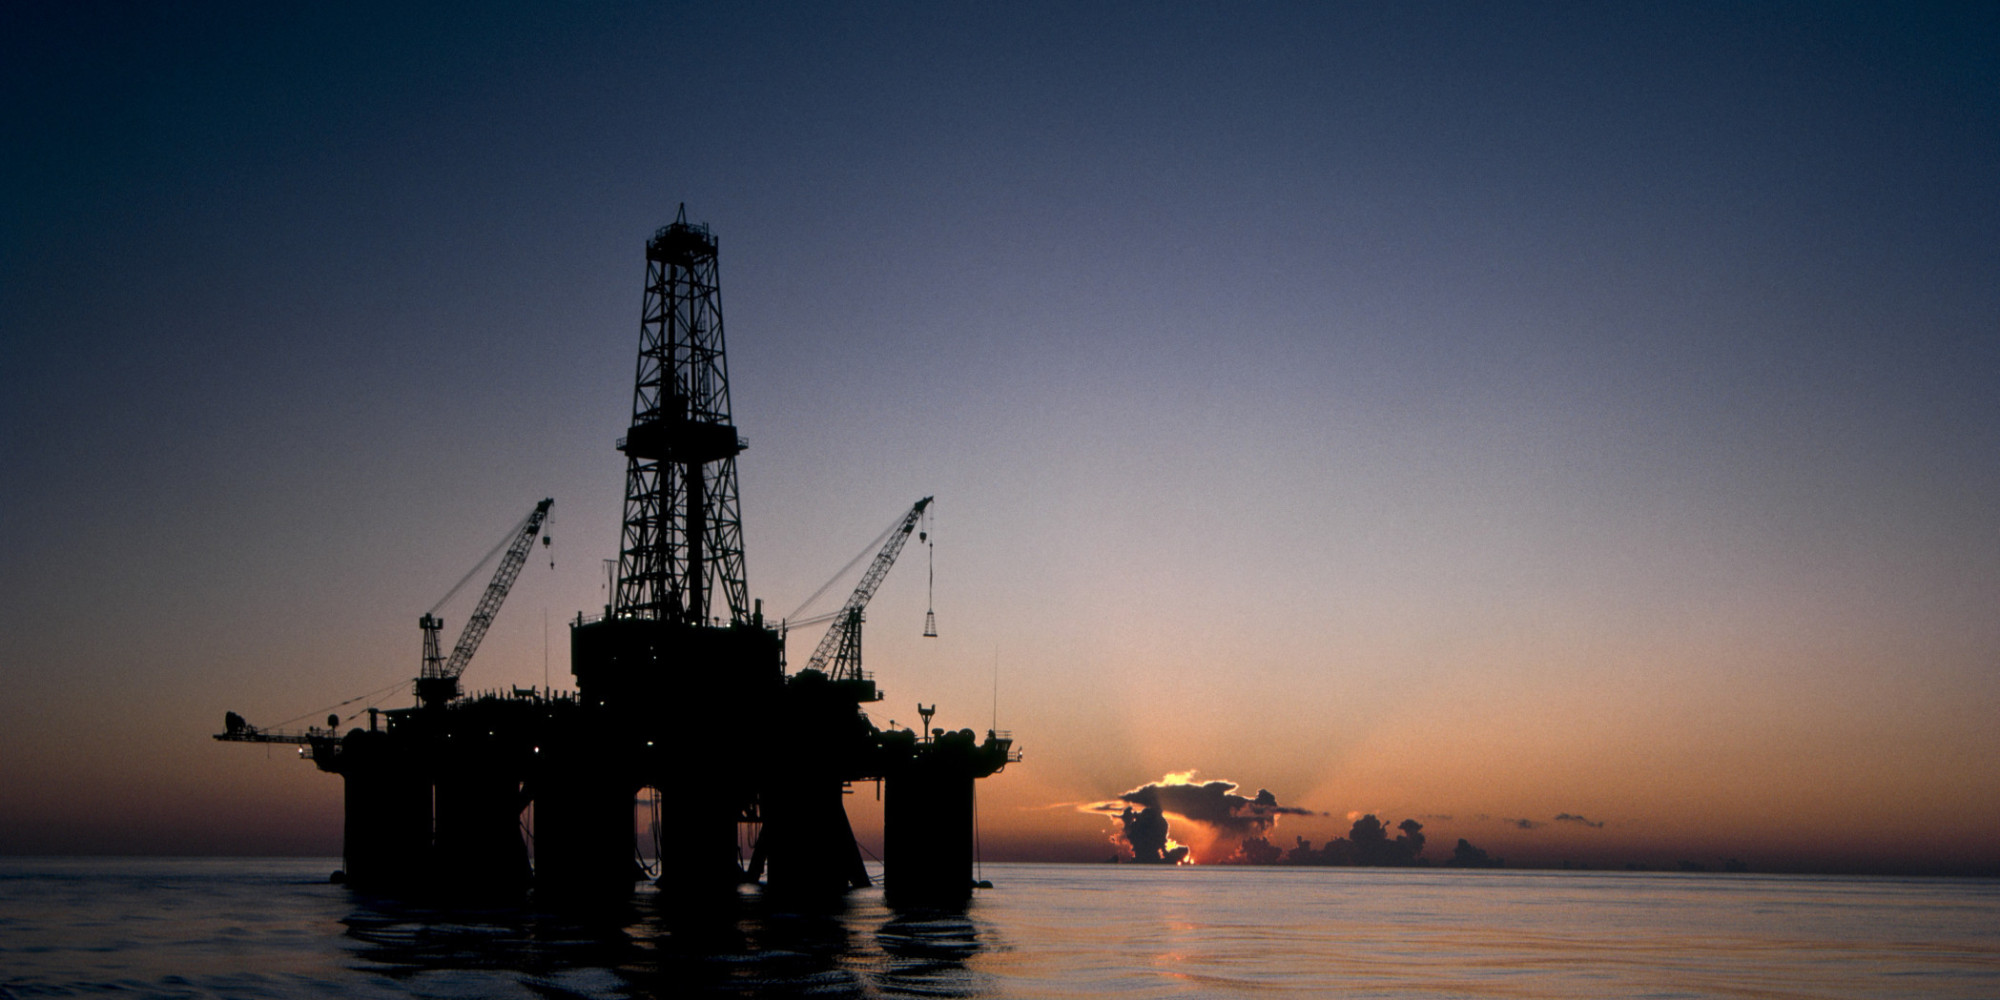 Oil Rig Explosion In Gulf Of Mexico Leaves 1 Dead, 3 ...